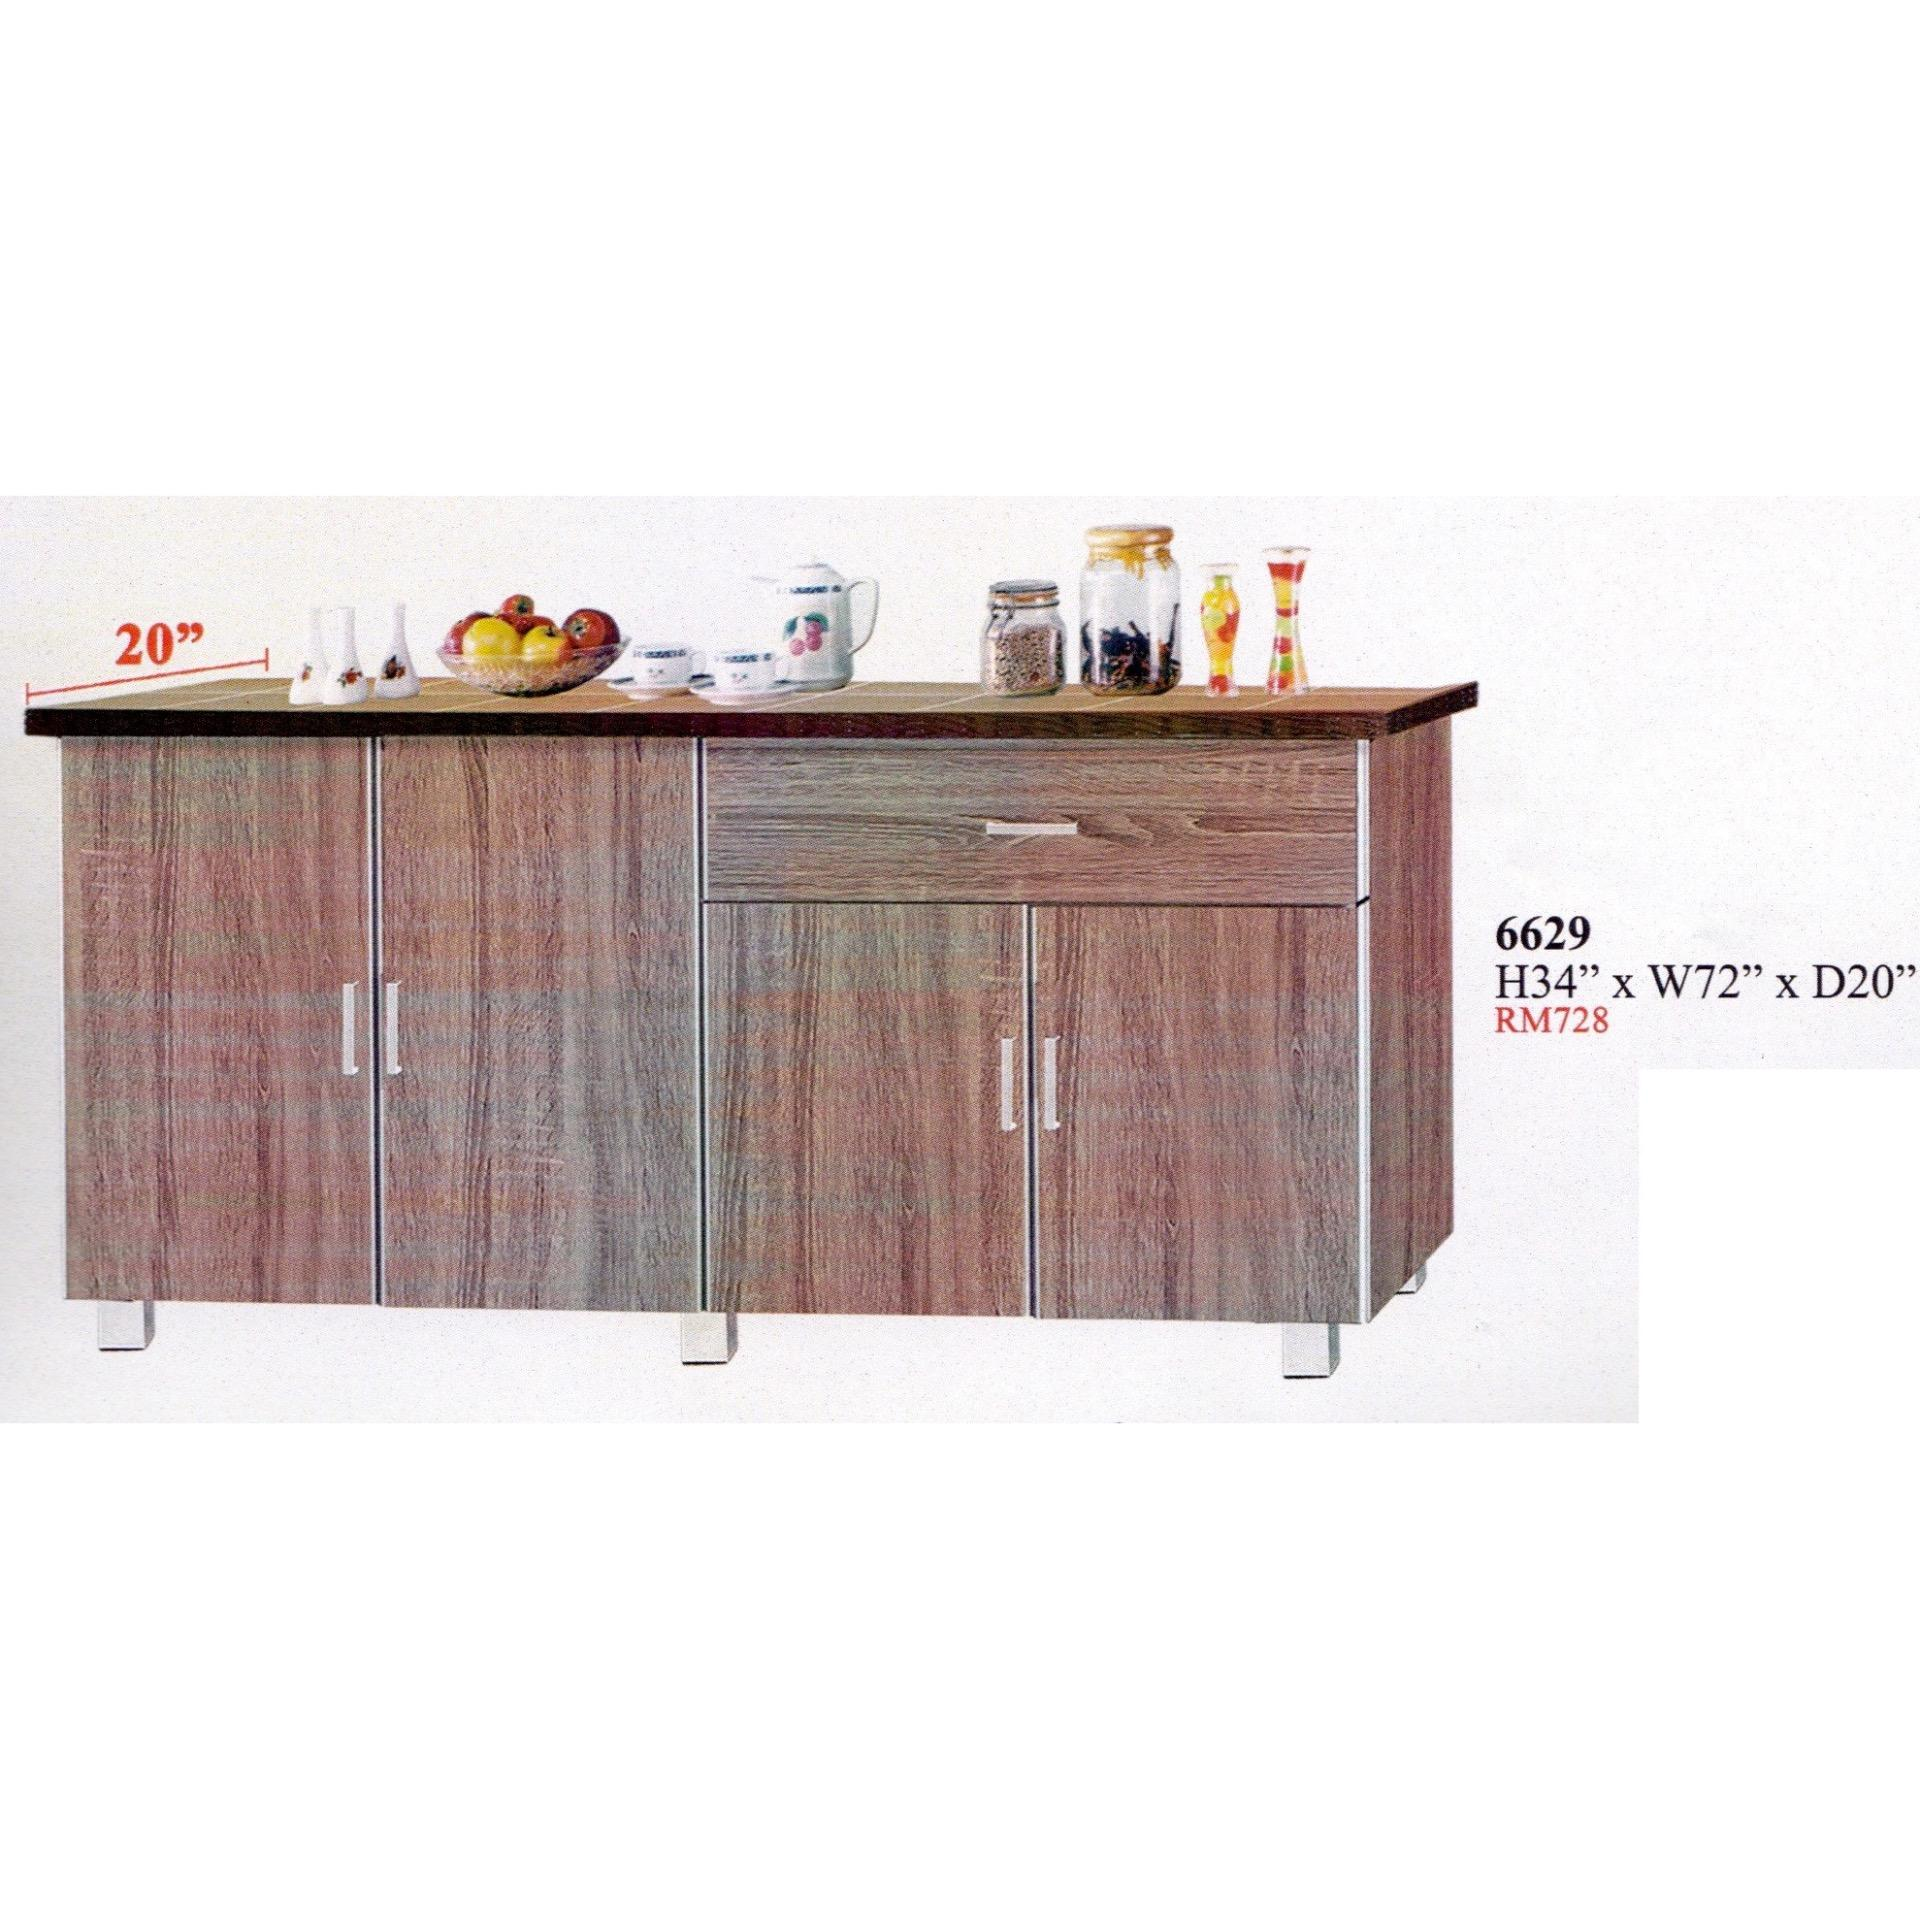 Ready Fixed 6 Feet Kitchen Cabinet With Mosaic Top 6629